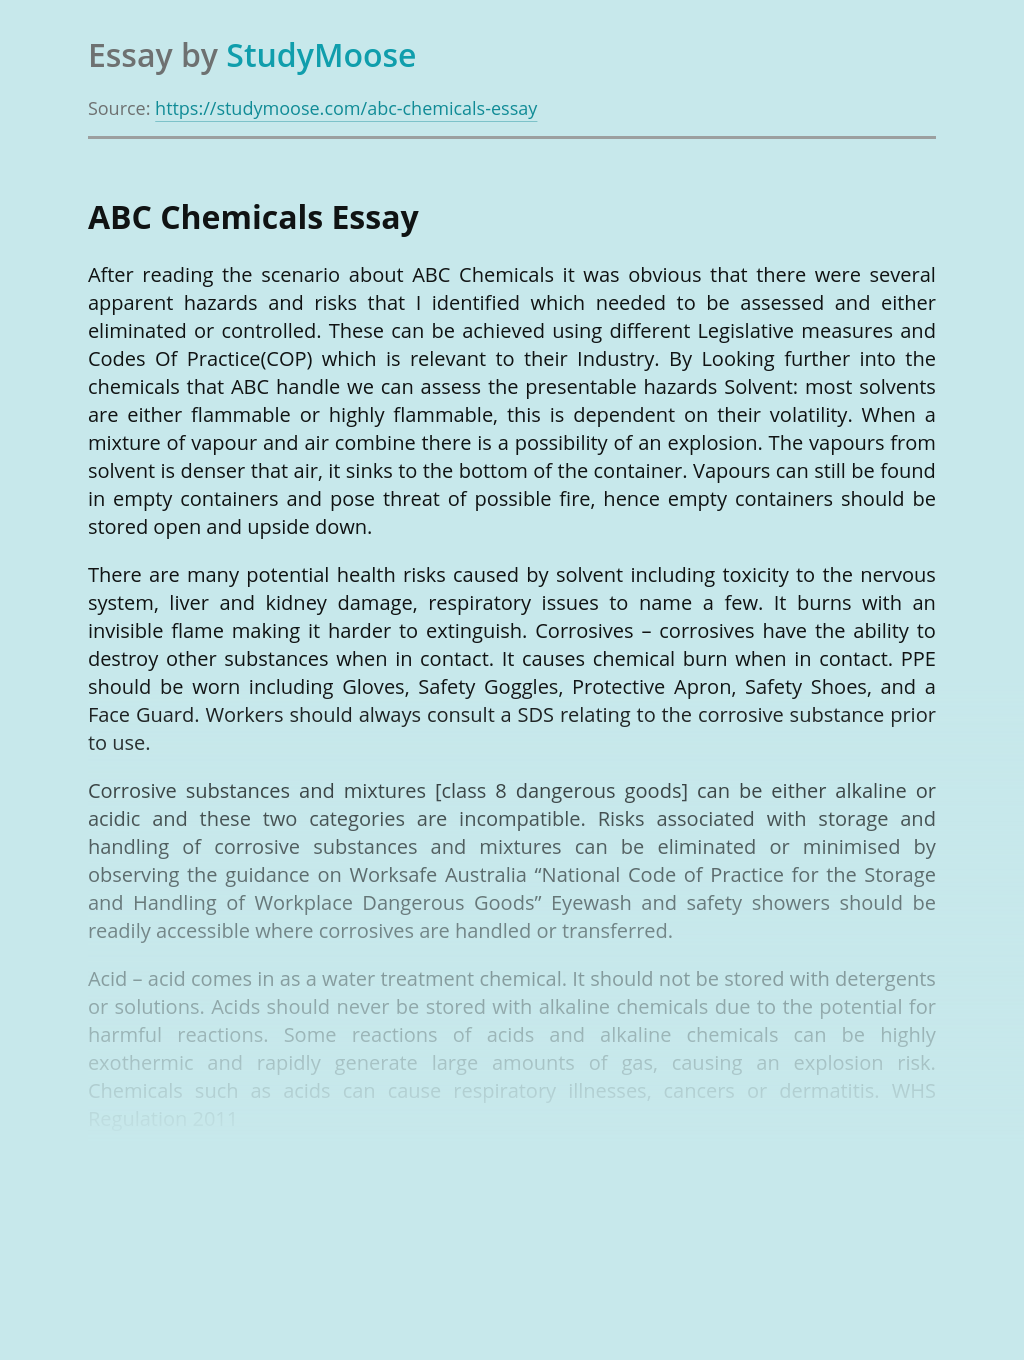 ABC Chemicals: Avoiding Workplace Chemical Hazards